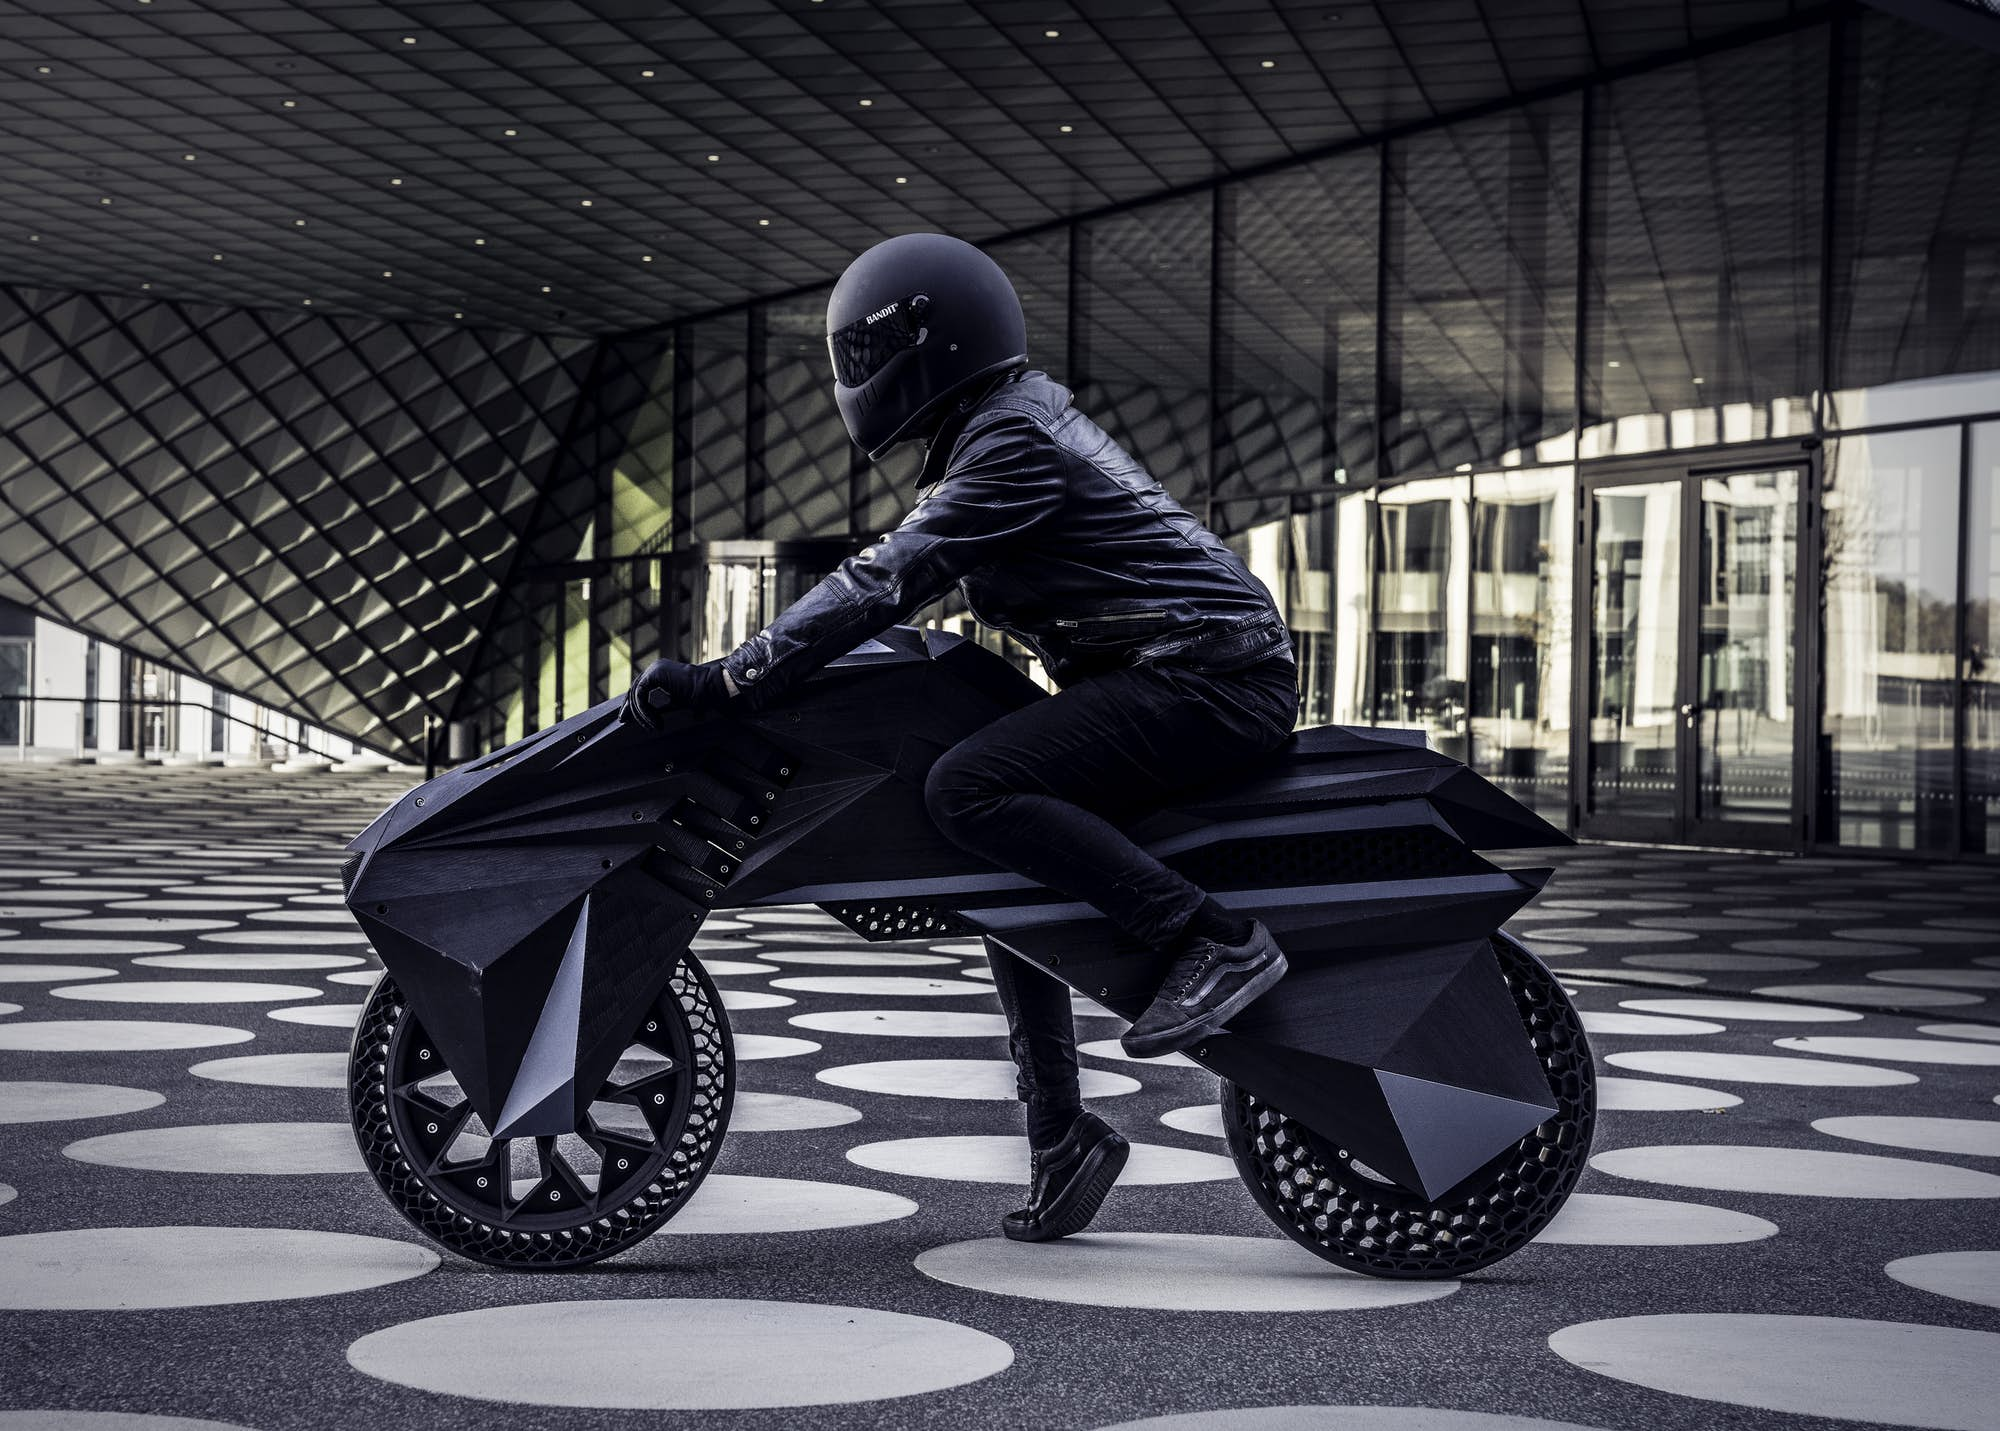 The Nera e-motorbike by BigRep. Image via BigRep